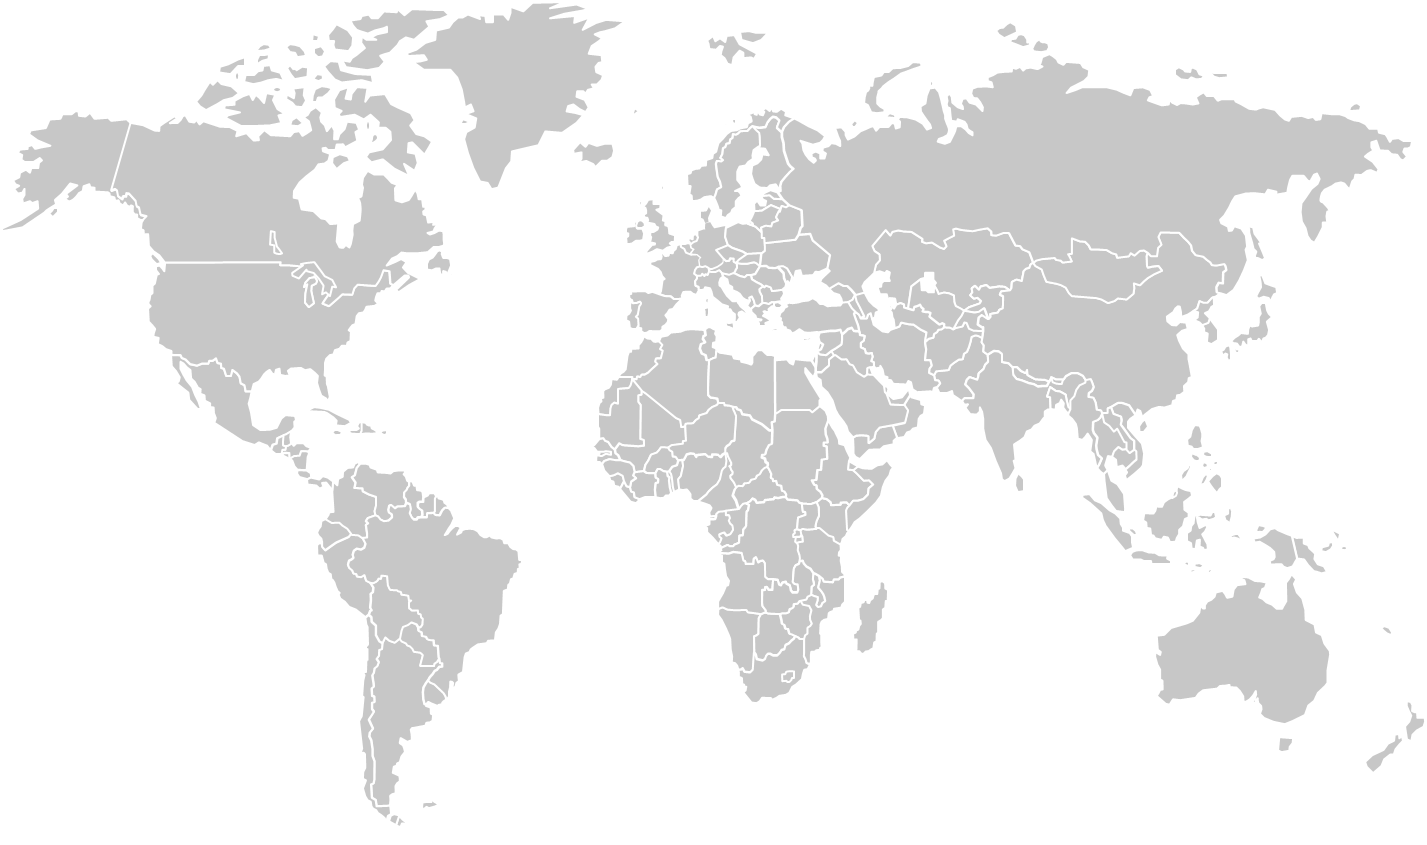 World map black and white png. Globe transprent free download